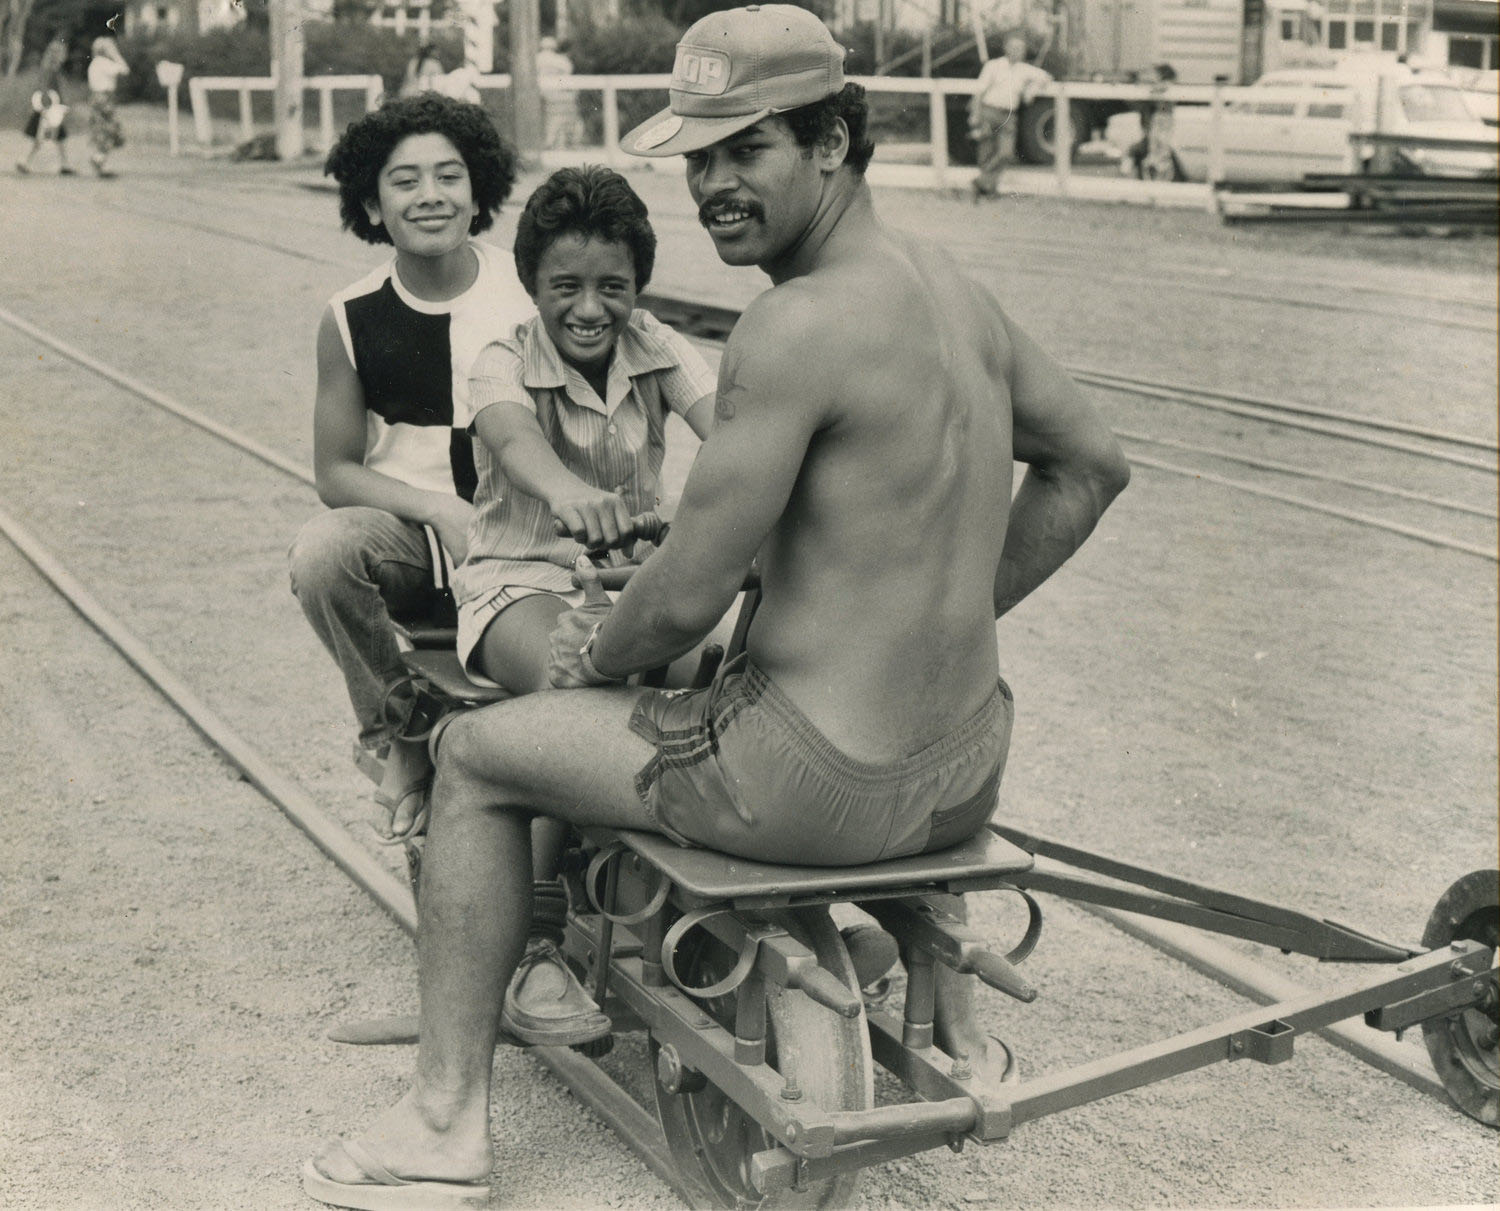 Mr James Lose, Kelston, gives two young visitors from Otara, Donni Takiari and Desmond Edwards, a jogger ride in the Henderson railroads during centennial celebrations, Henderson Rail Centenary, 21/03/1981. Photograph by the Western Leader. Auckland Libraries, Courtesy of West Auckland Research Centre.